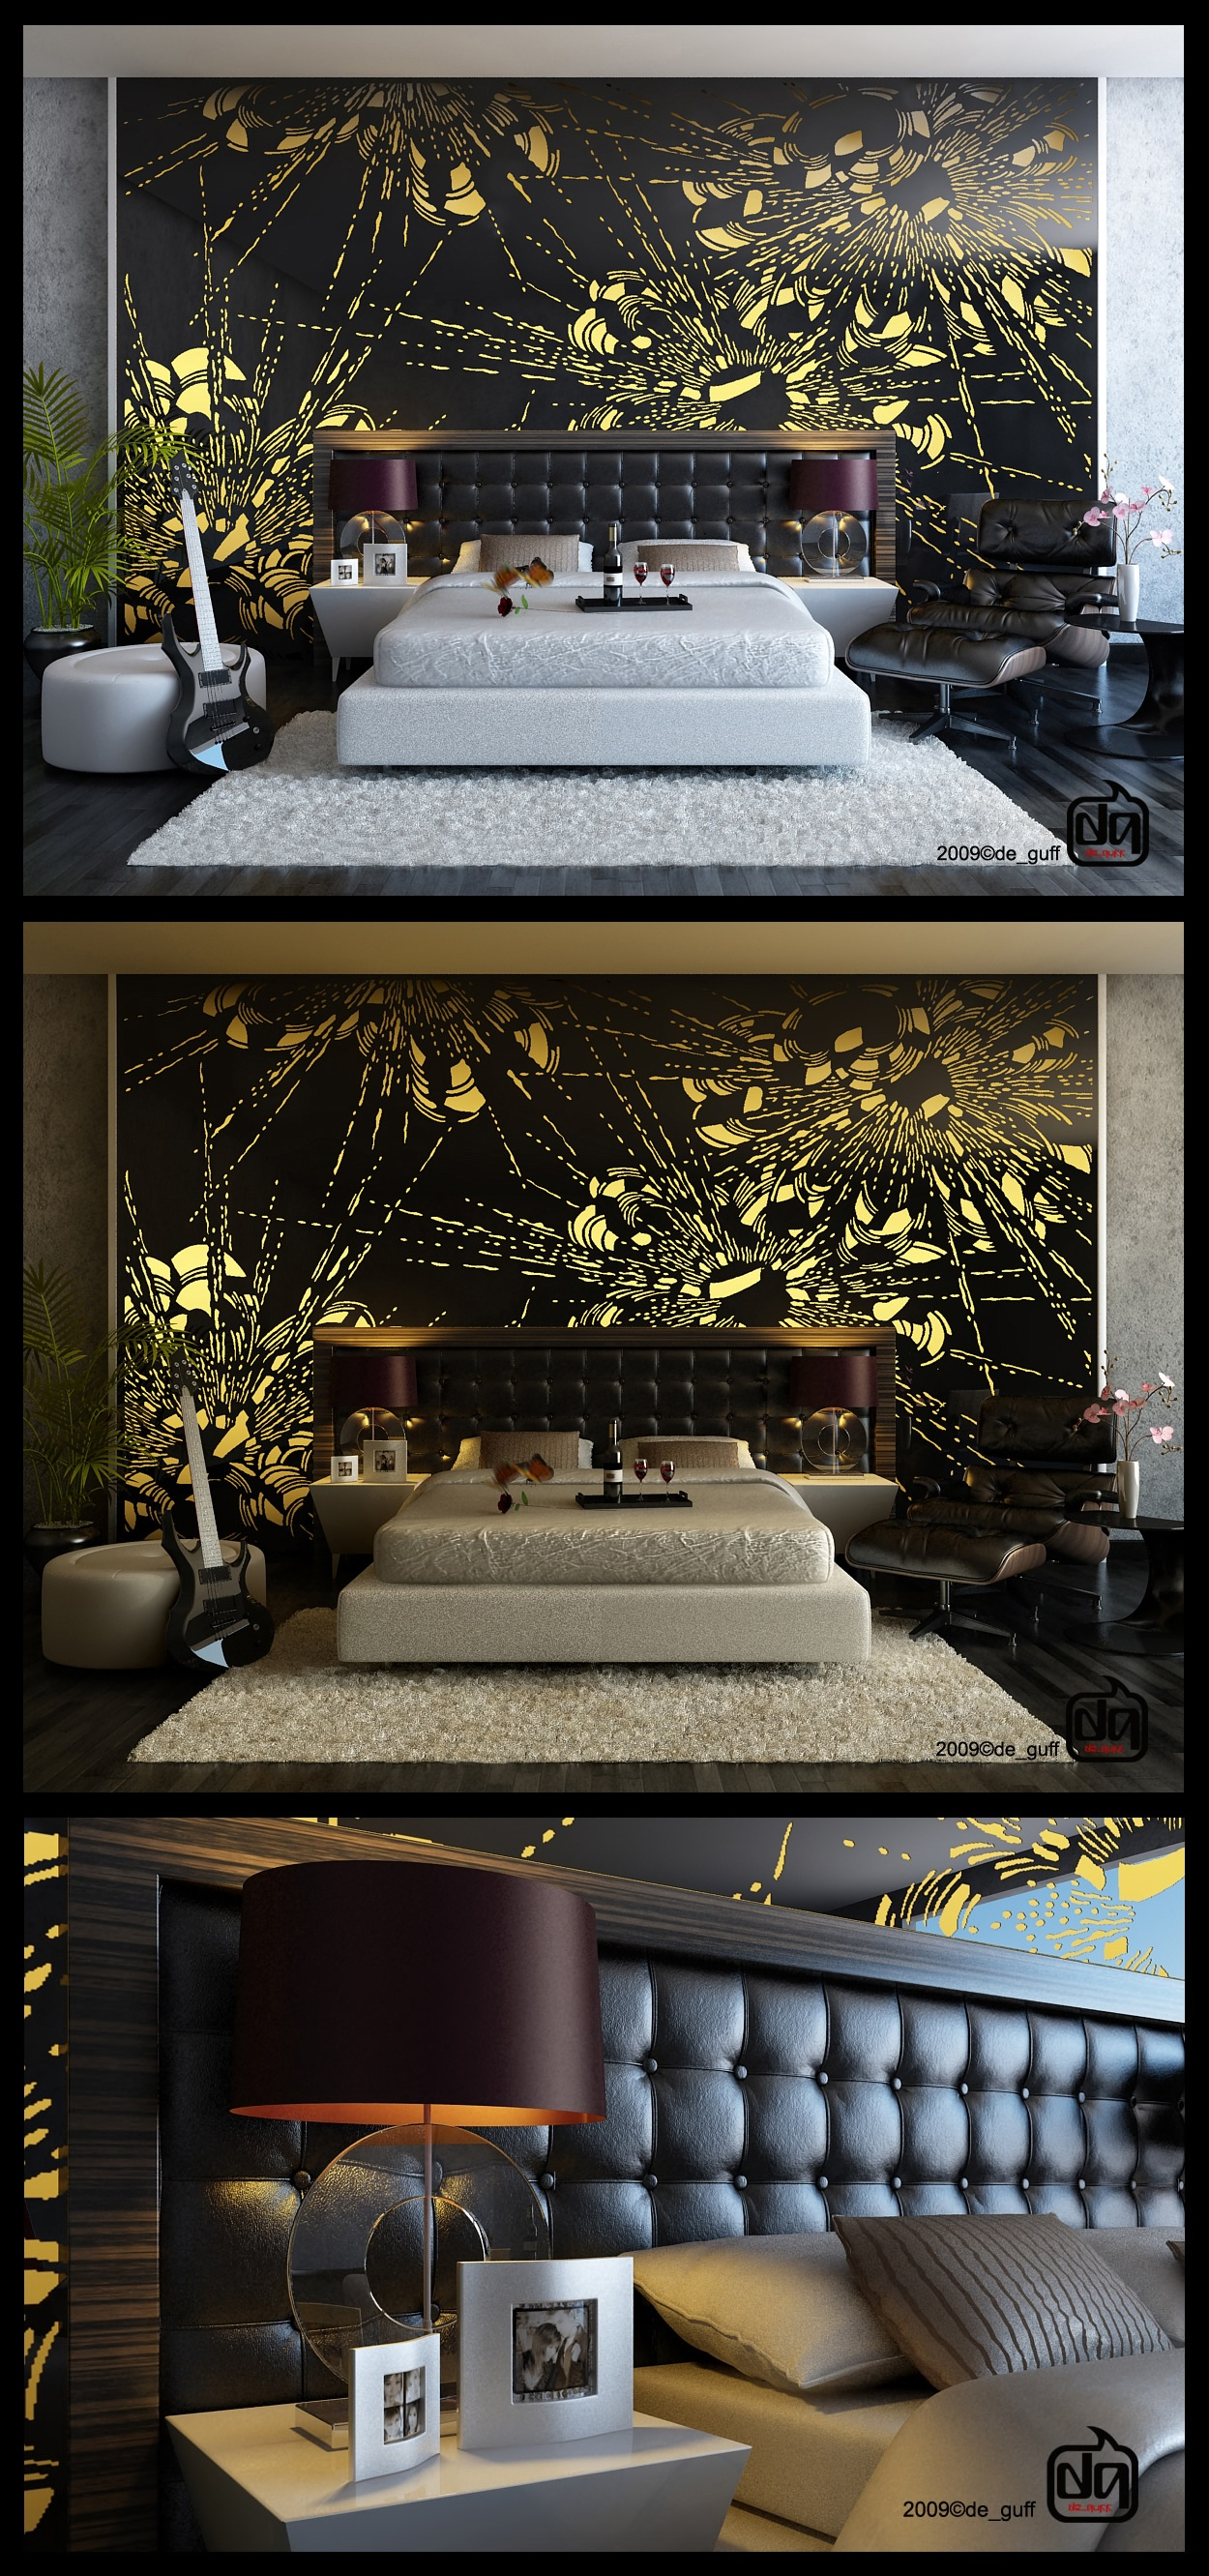 Black yellow bedroom feature wall mural interior design - Wall mural ideas for bedroom ...